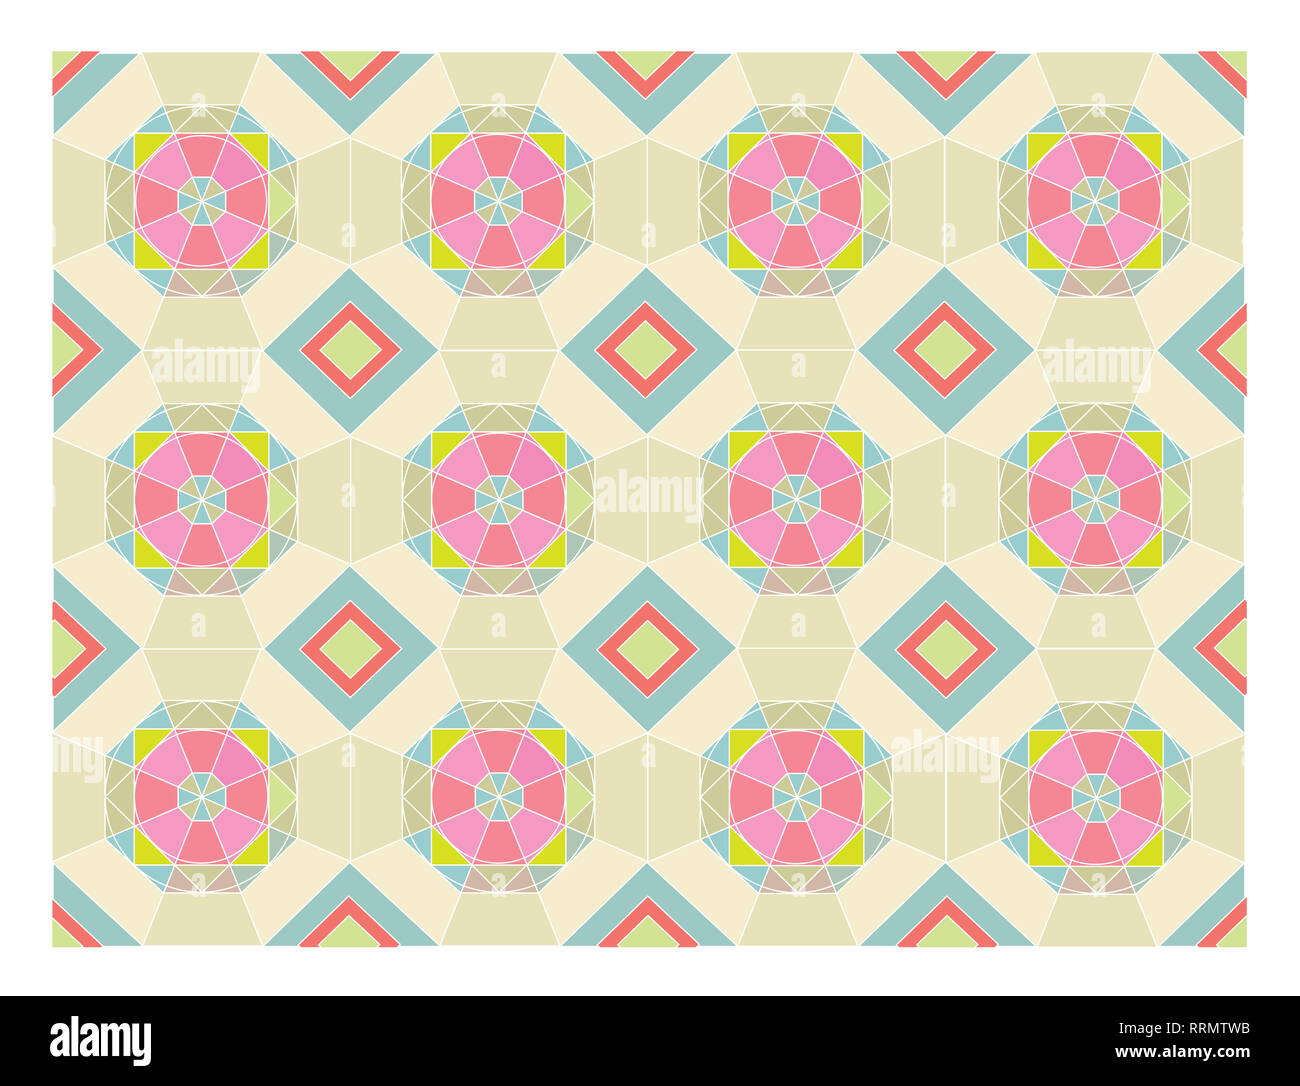 Motif hexagonal avec des couleurs vives Photo Stock